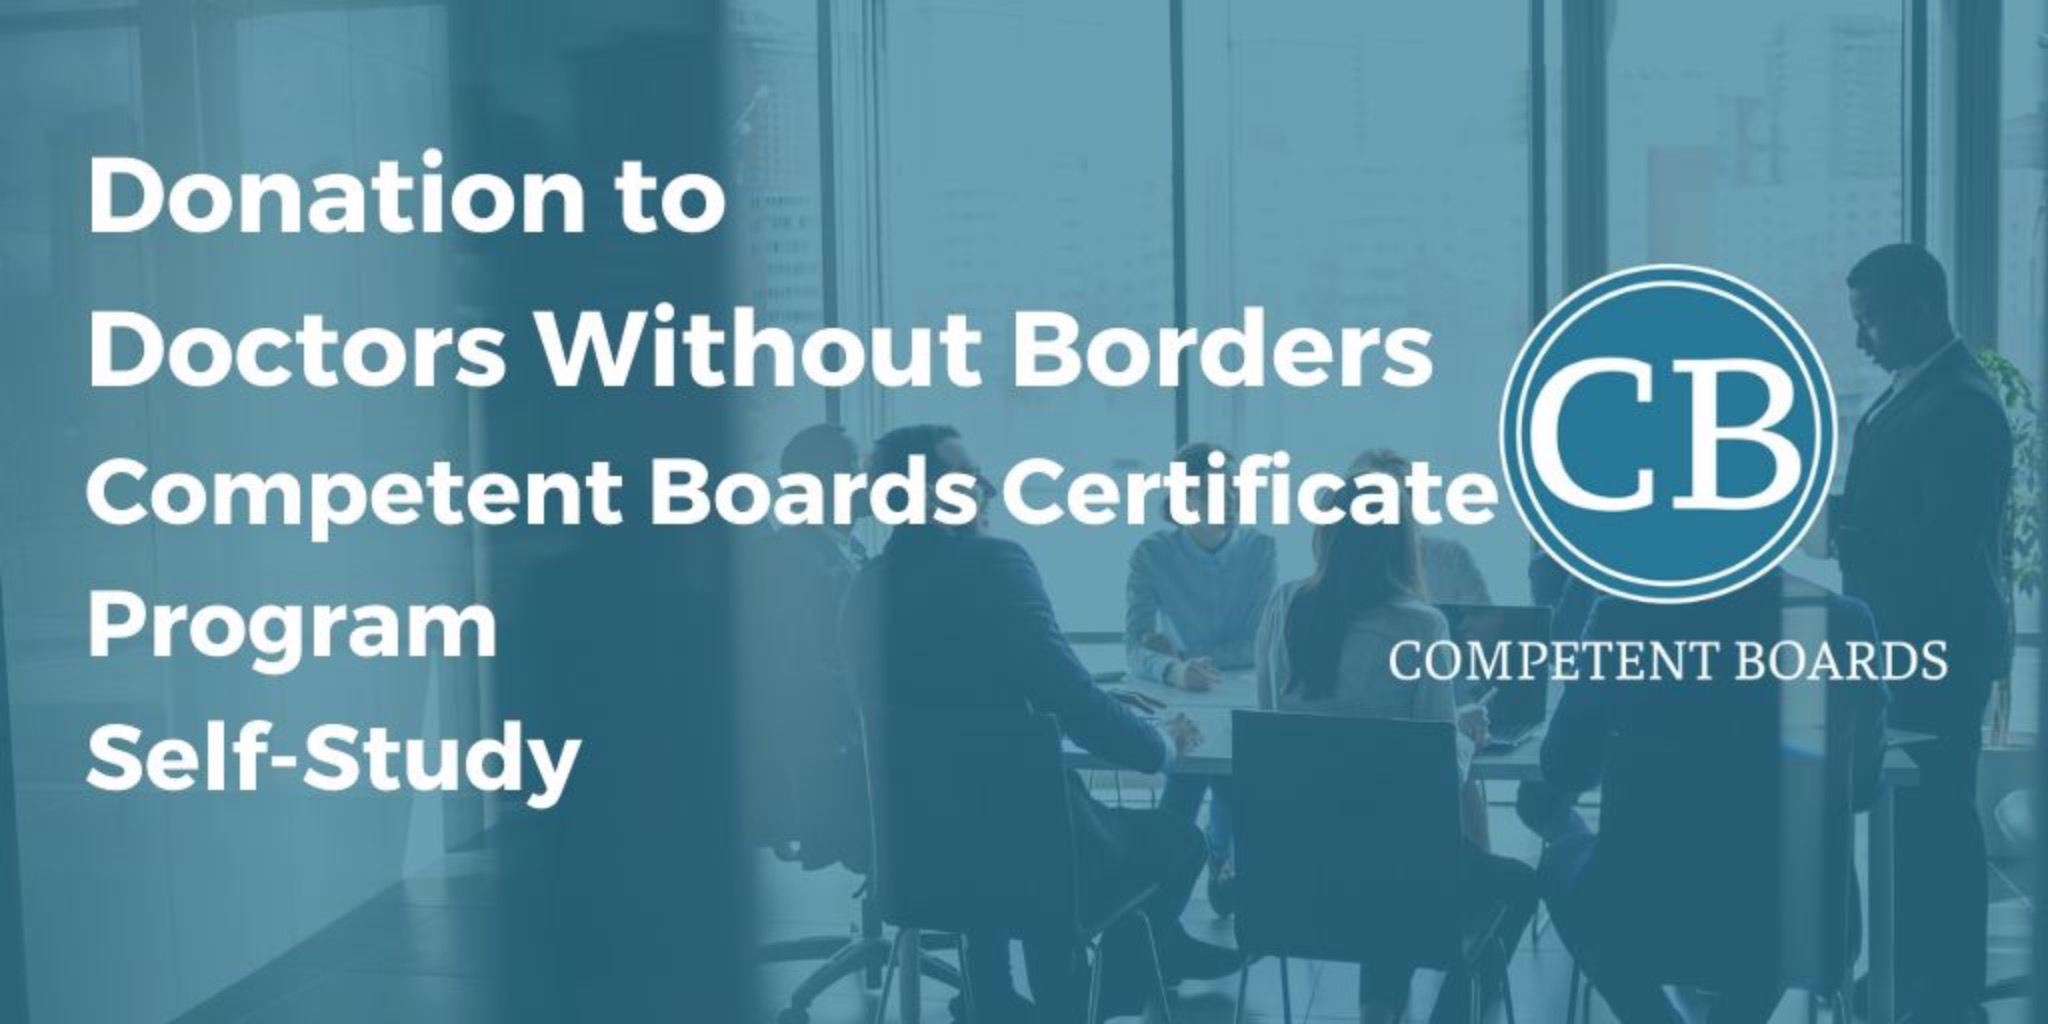 Certificate Program Self-Study - Donate to Doctors Without Borders